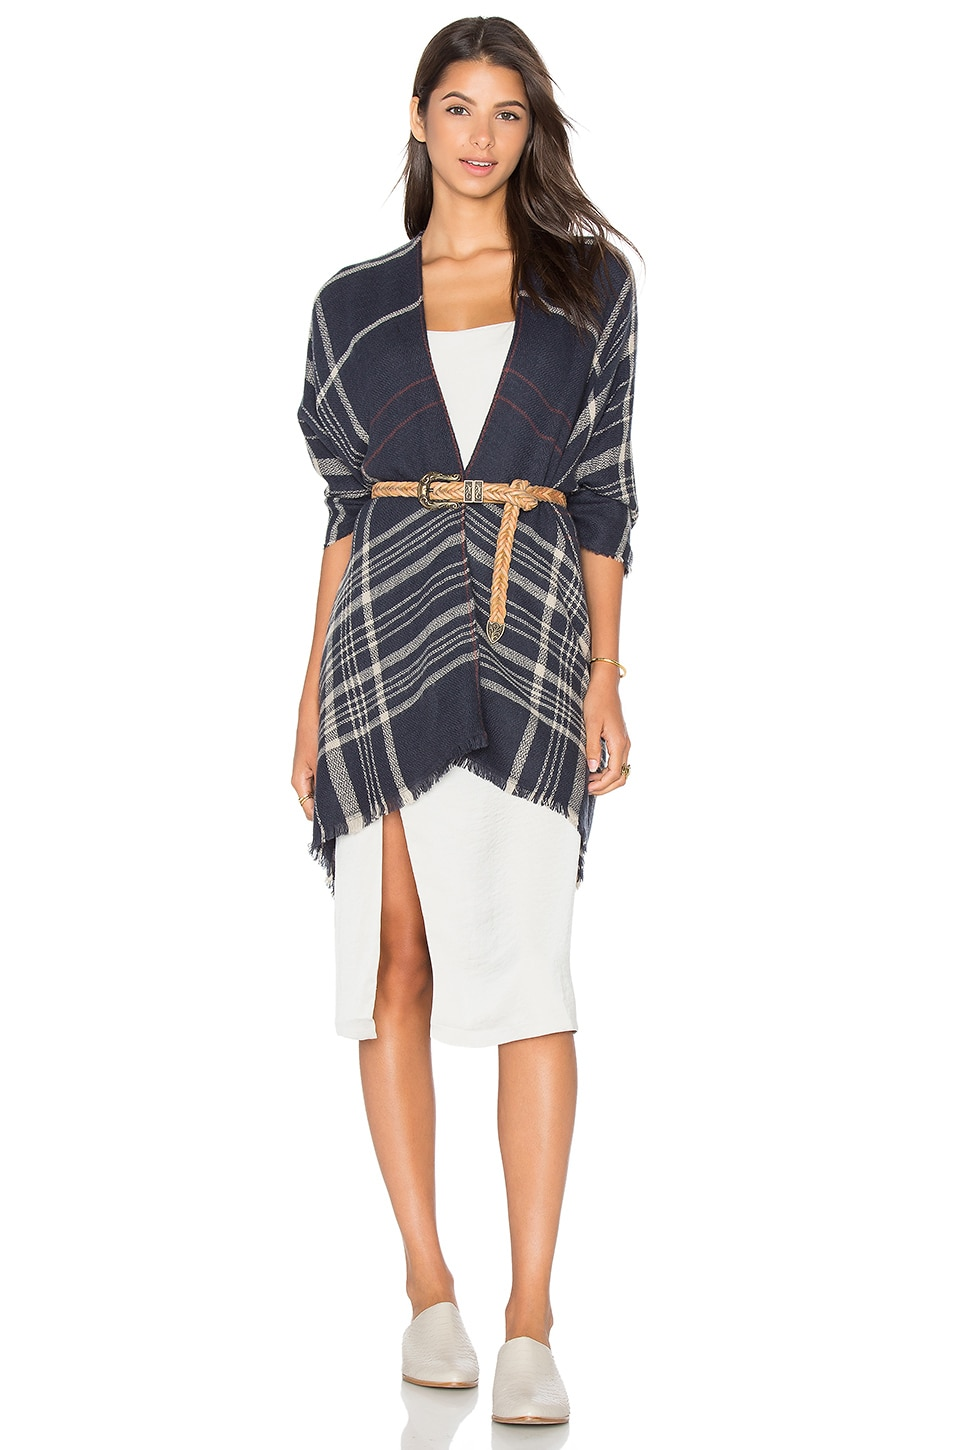 Plaid To See You Cape by Michael Stars